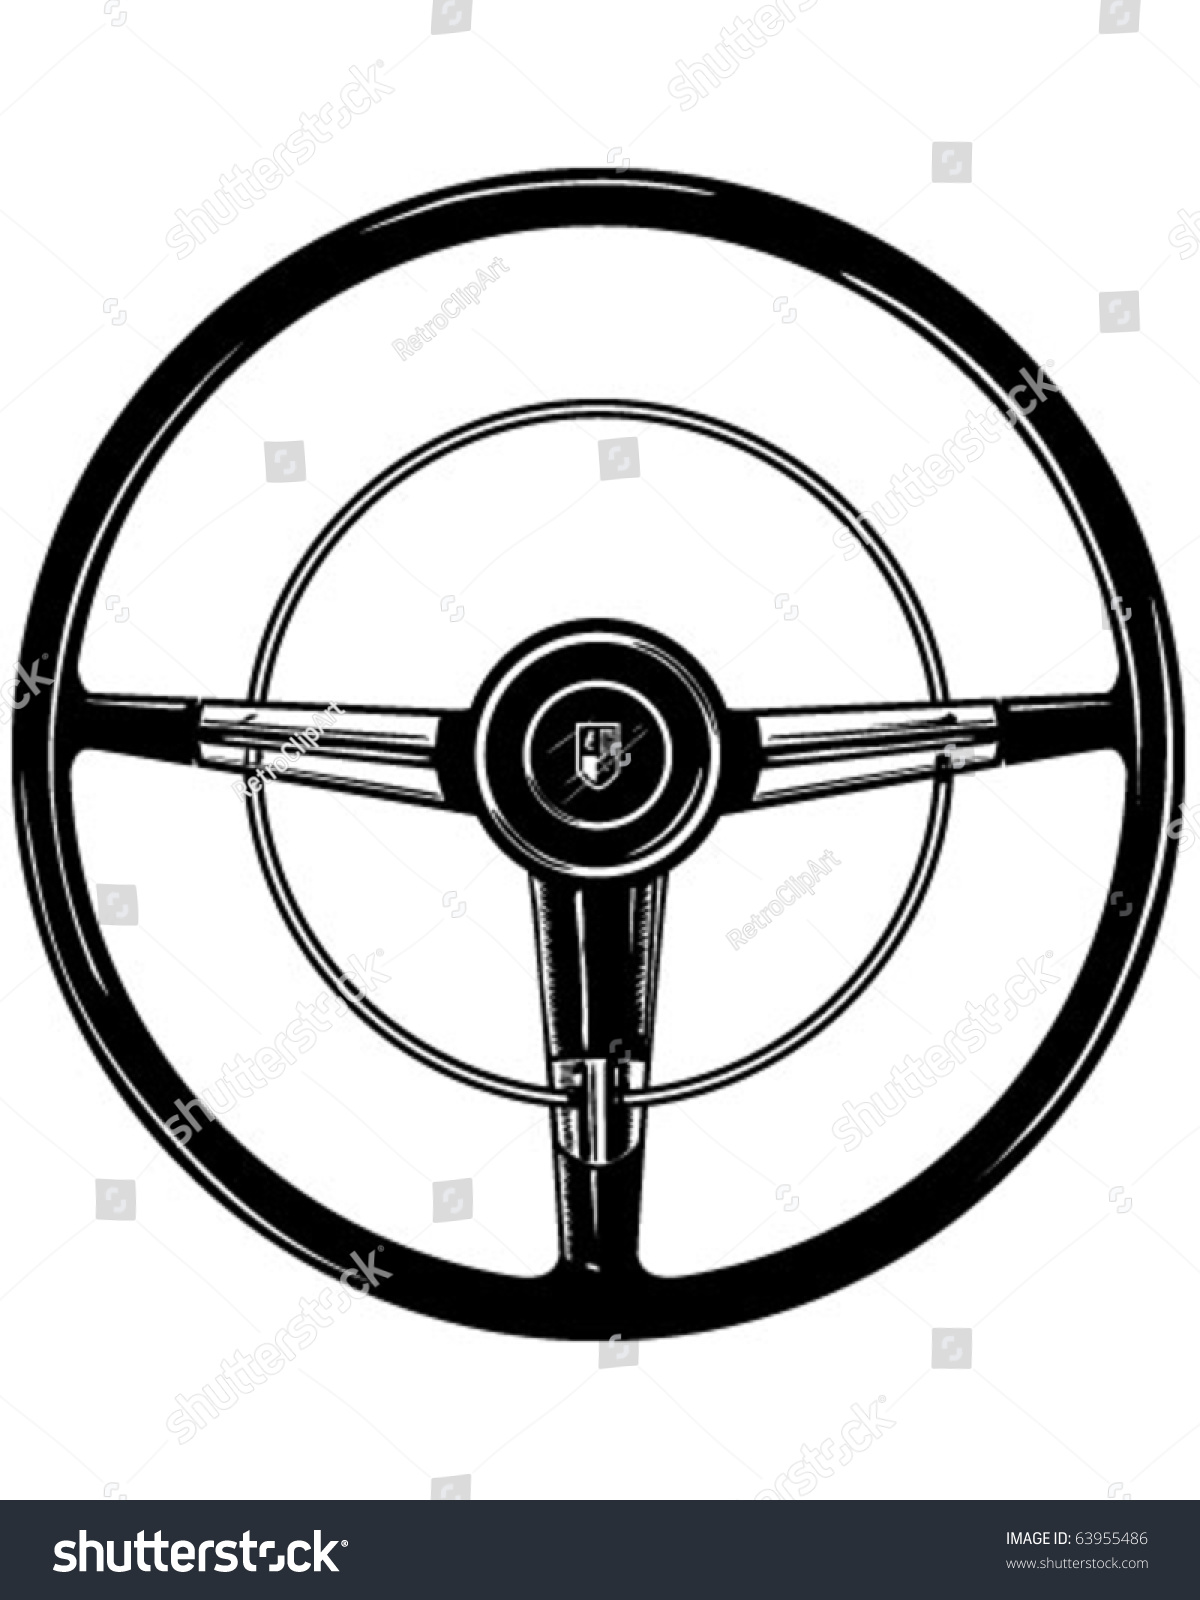 Retro Steering Wheel Clipart Illustration Stock Vector ...